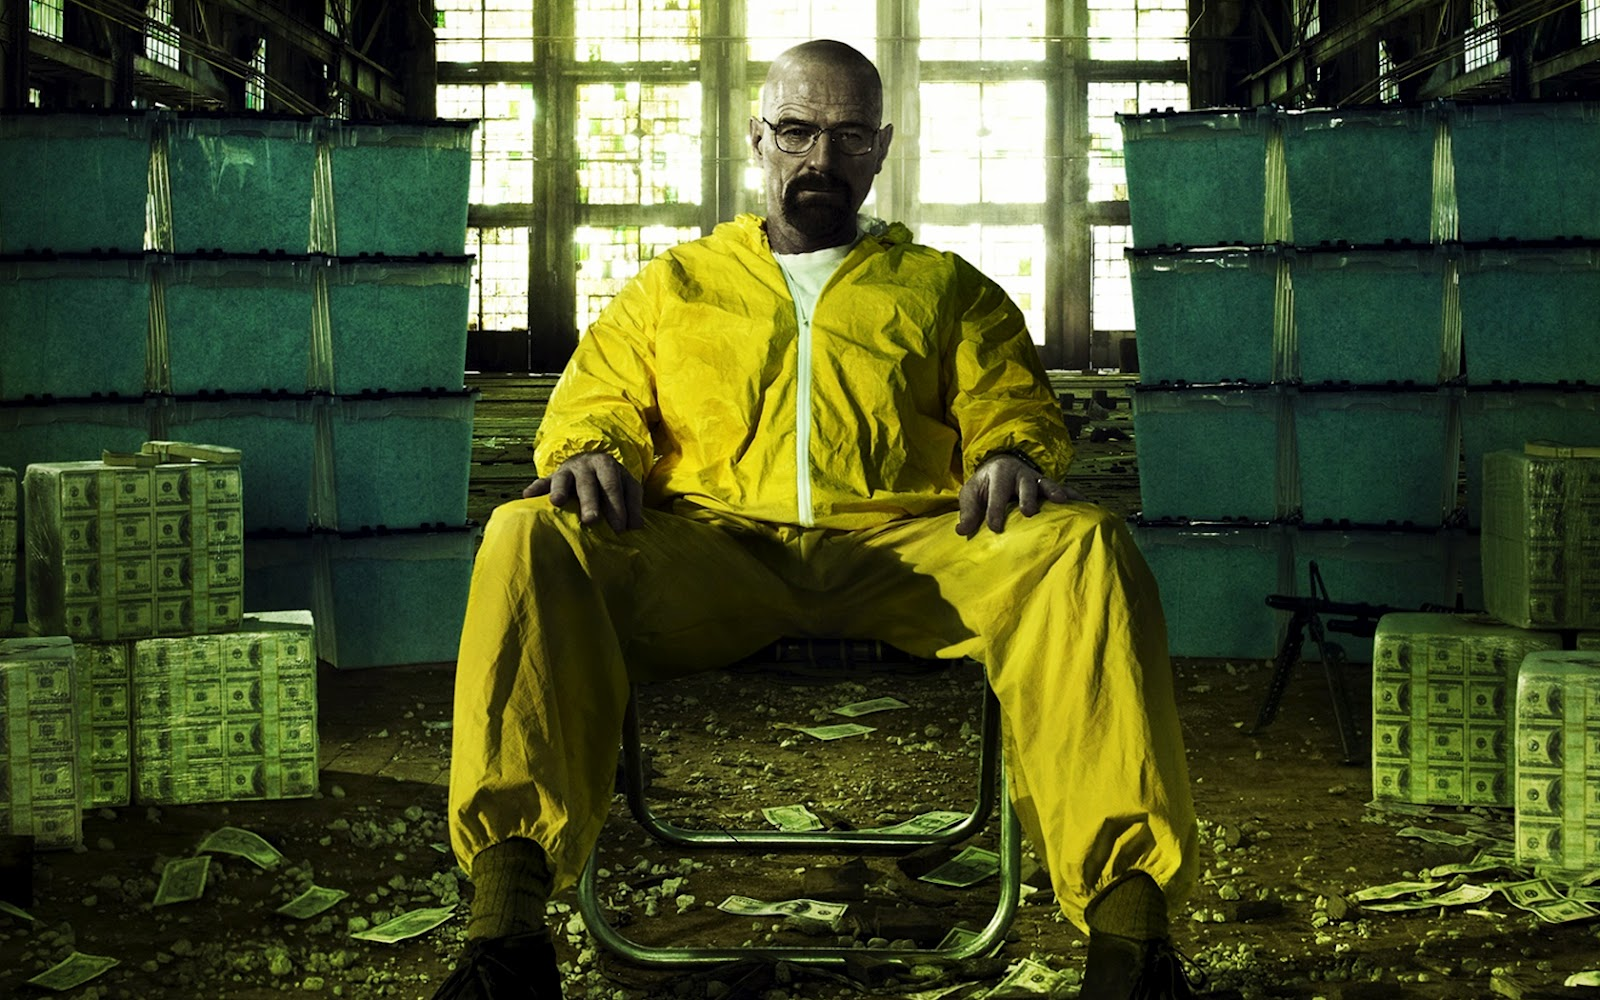 http://3.bp.blogspot.com/-jKNk4xx2fwA/UEe2CE6cvRI/AAAAAAAAEUI/h81xQyy4iTI/s1600/Breaking-Bad-2012-Walter-with-Tones-of-Money-HD-Wallpaper--Vvallpaper.Net.jpg